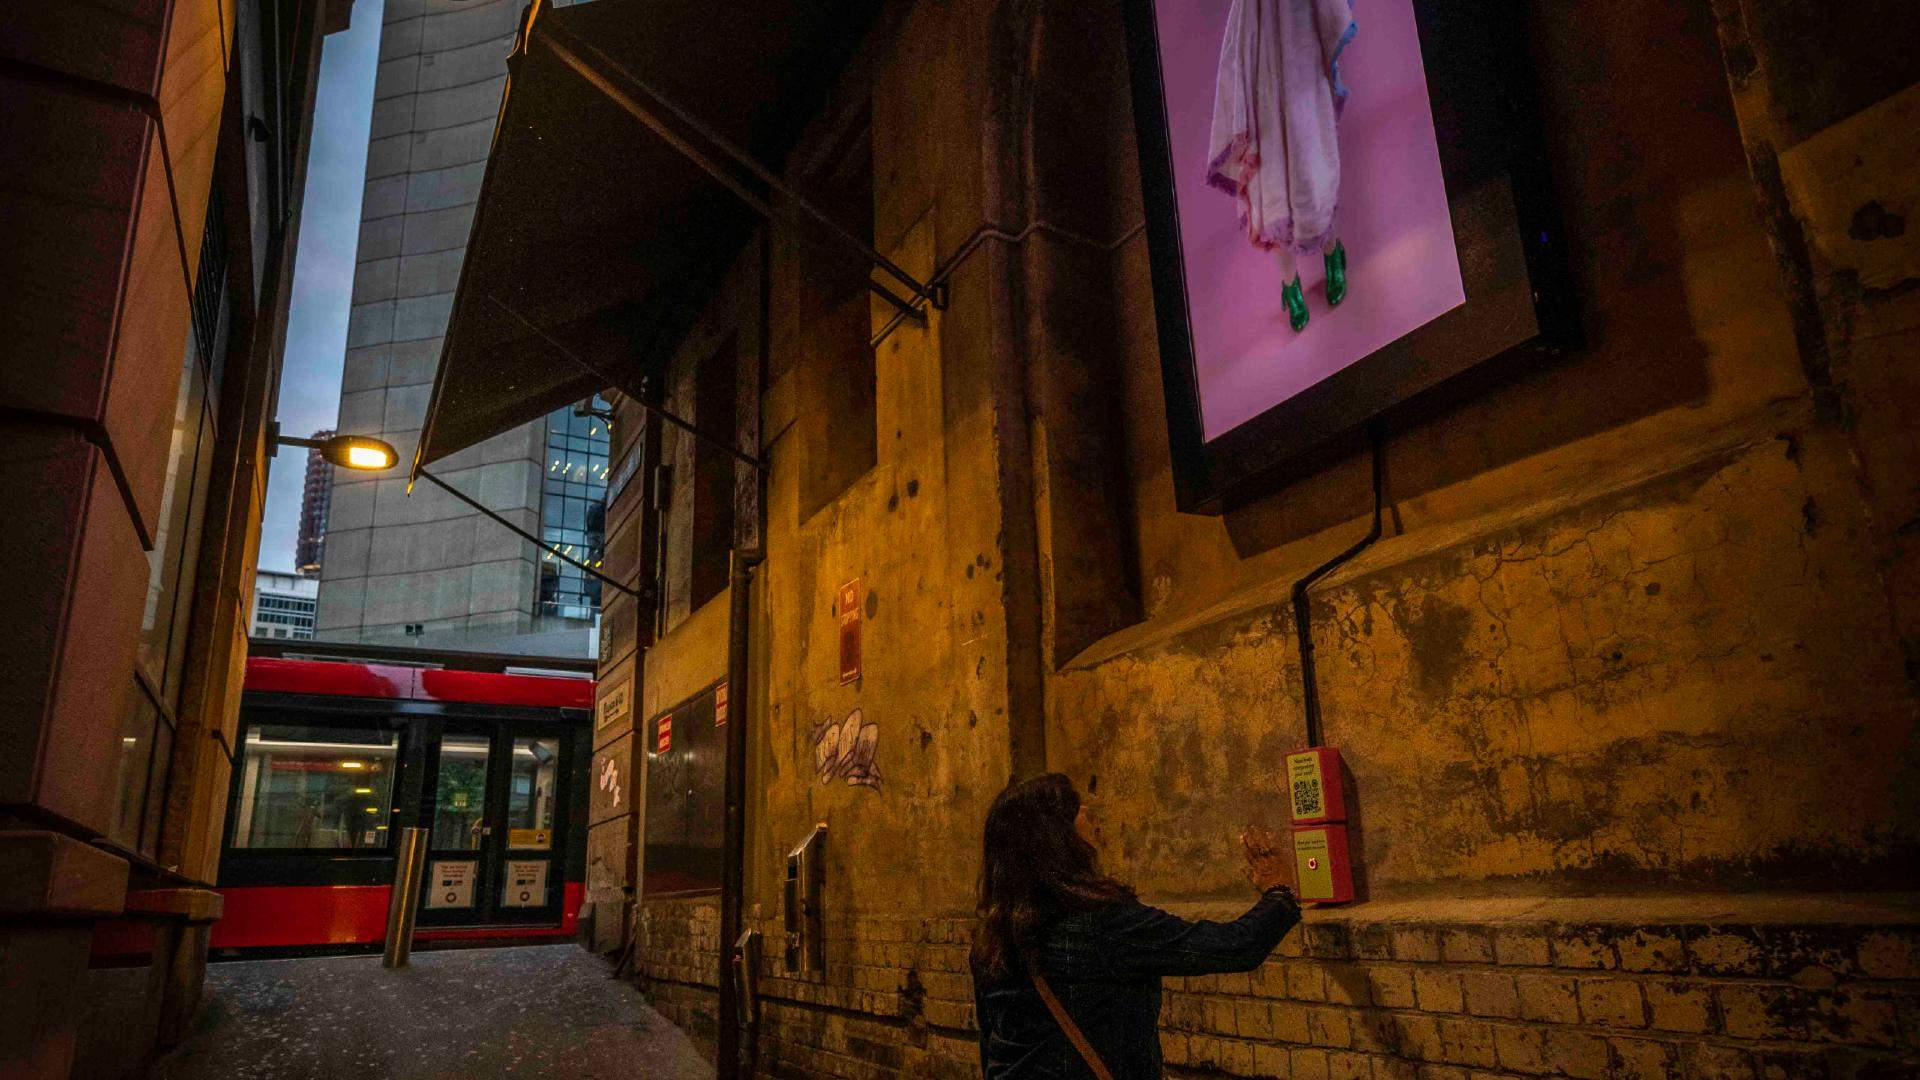 Sydney CBD's Laneways Have Been Decked Out with Four New Public Art Installations